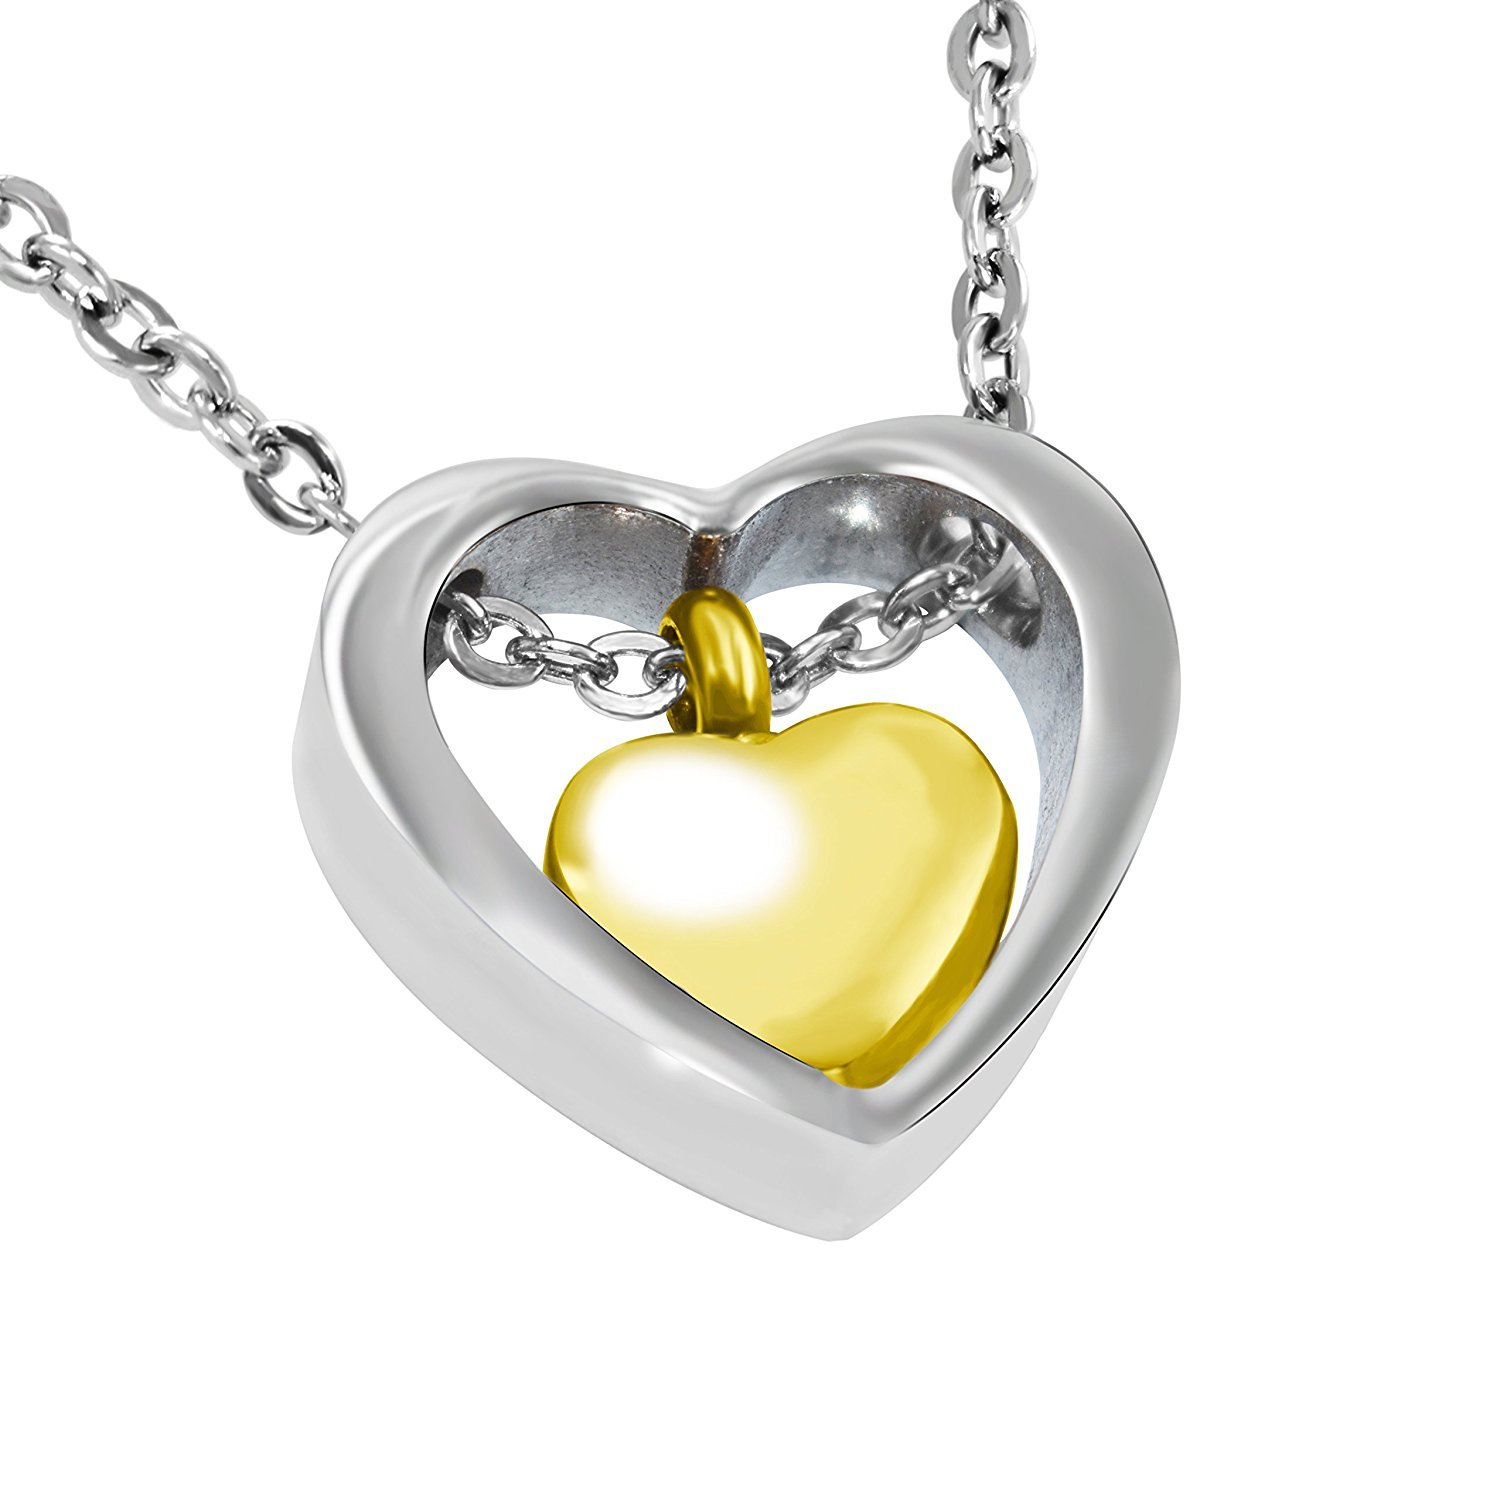 Cheap cremation ash pendant find cremation ash pendant deals on gold heart in heart titanium steel 316l stainless steel ash pendant cremation jewelry urn mozeypictures Choice Image